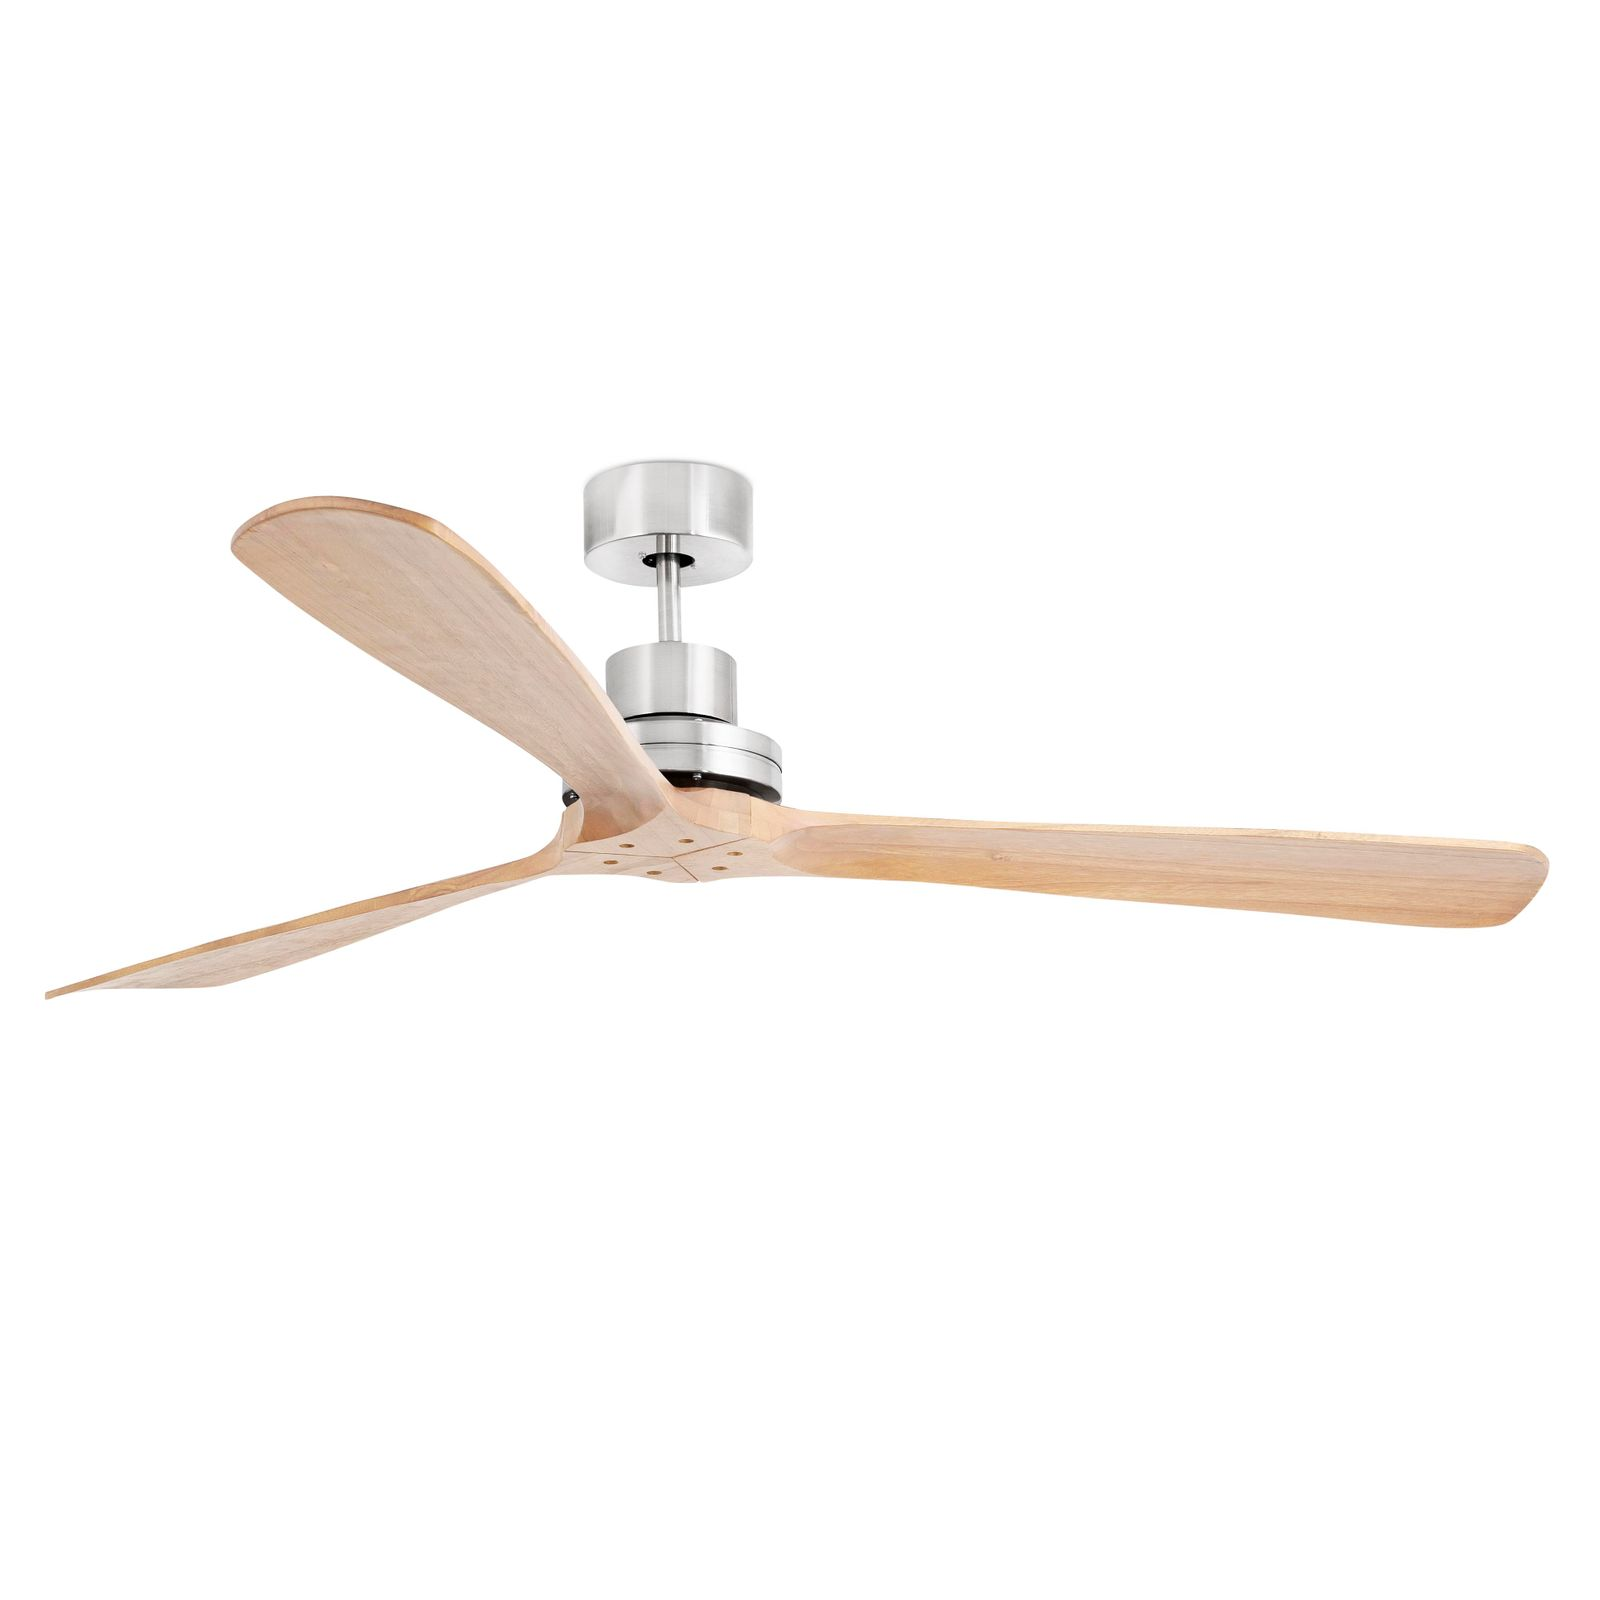 "Faro ceiling fan Lantau G 168 cm 66"" with remote control blades"